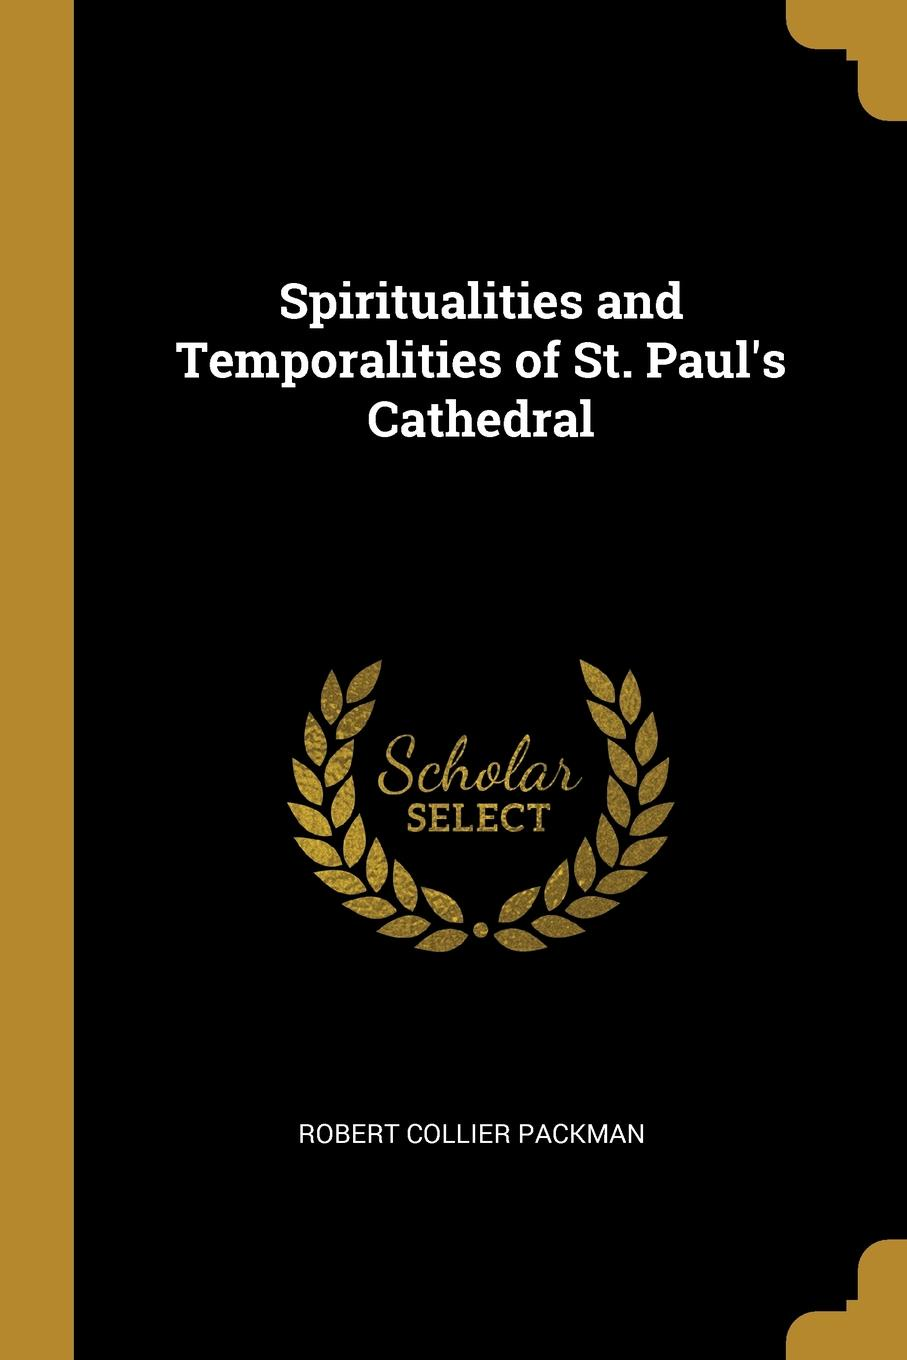 Robert Collier Packman. Spiritualities and Temporalities of St. Paul.s Cathedral